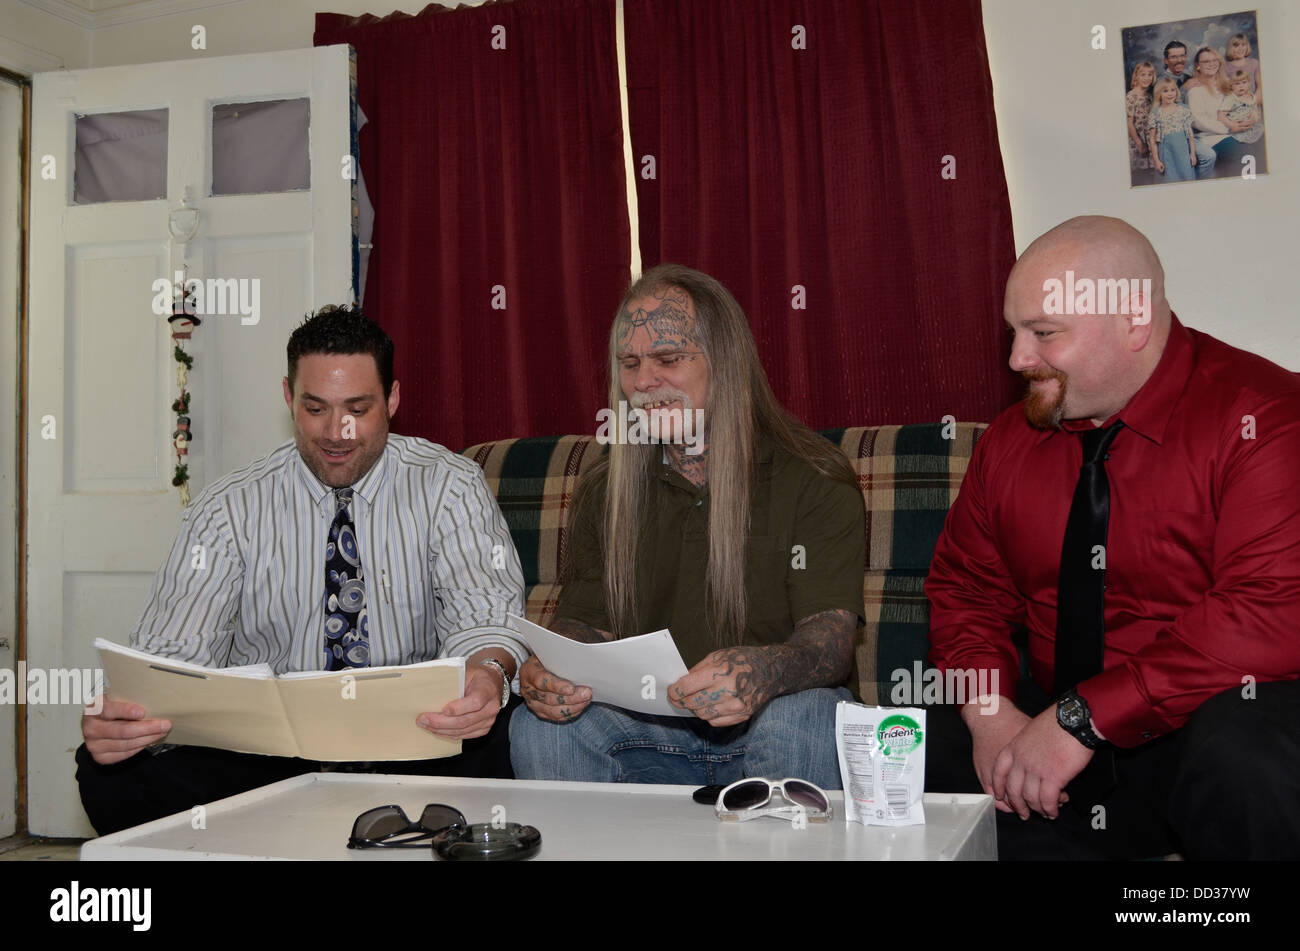 Male Adult Parole officers meeting with male parolee. - Stock Image